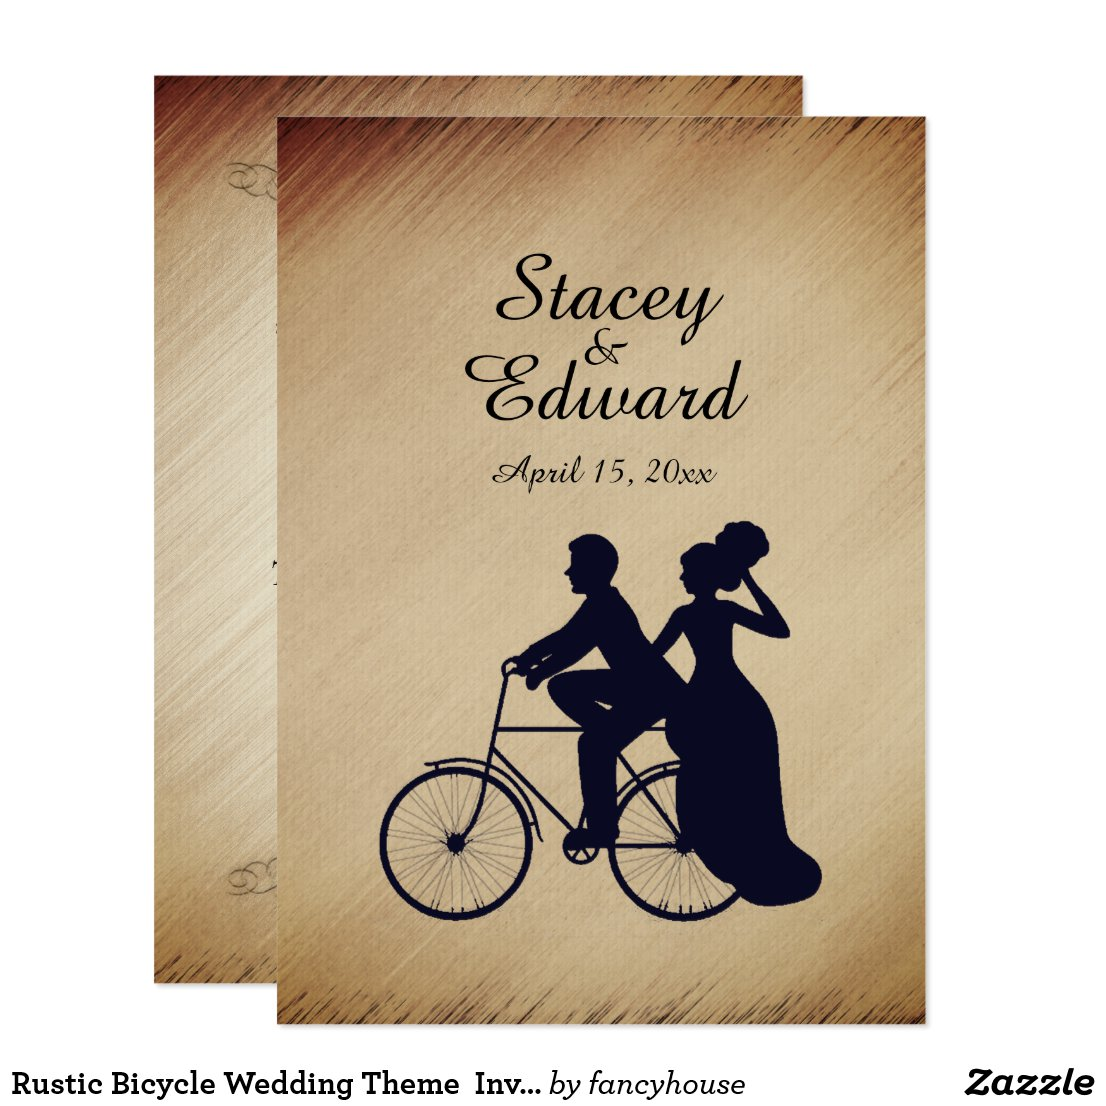 Rustic Bicycle Wedding Theme Invitation